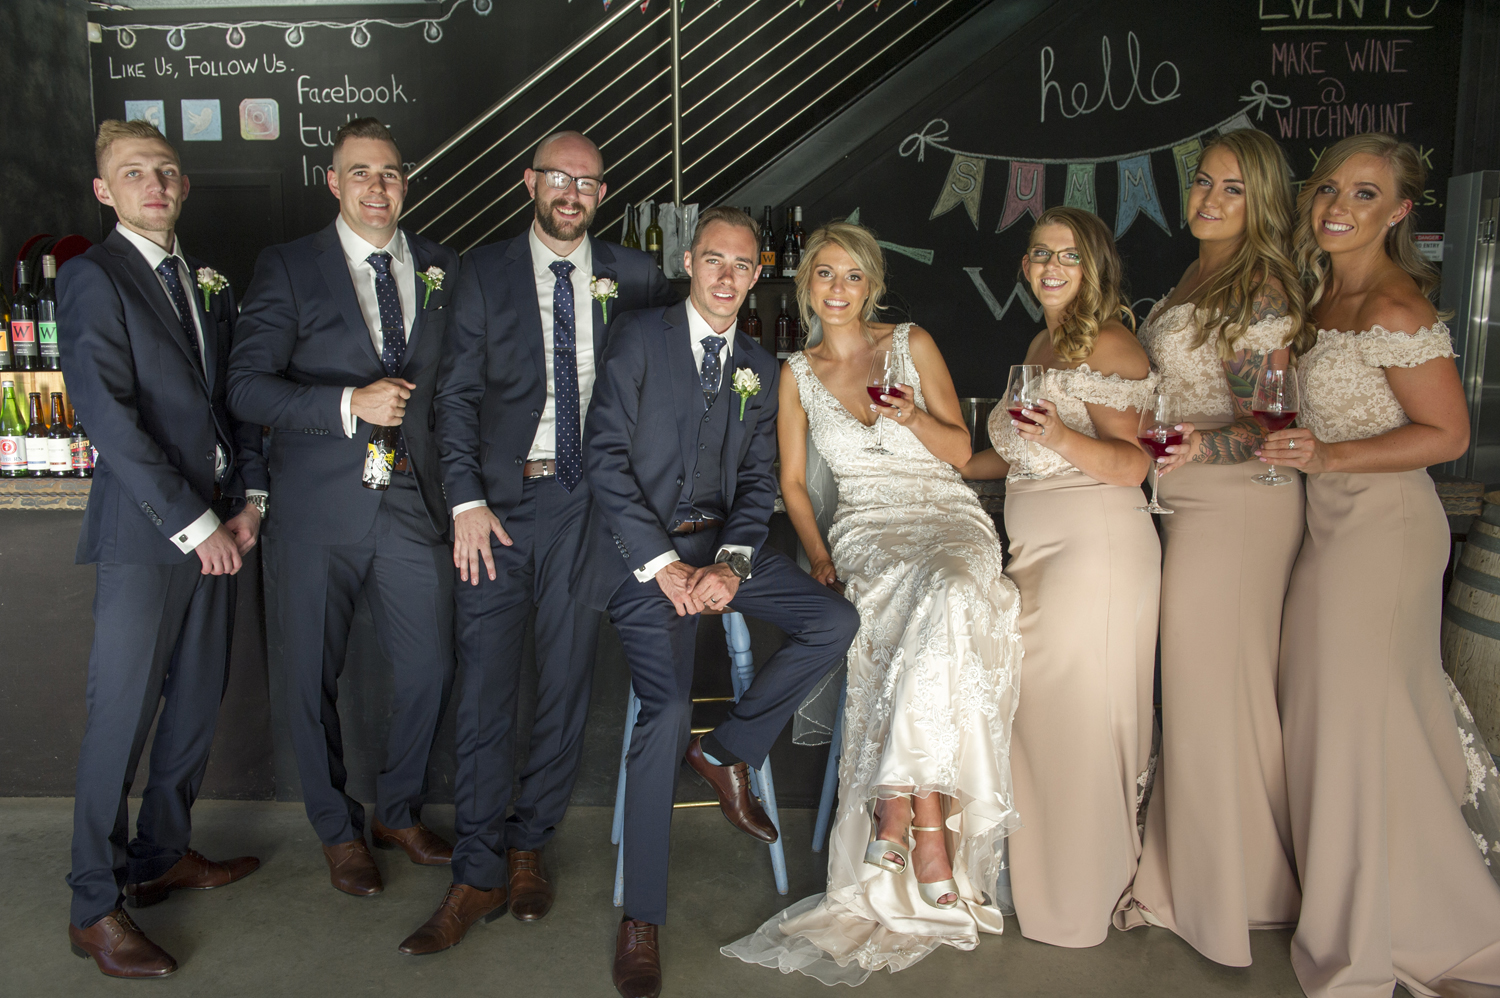 ROBYN + MITCHELL MELBOURNE WEDDING - ALLURE BRIDALS WEARING STYLE ANGIE 9116 - A -LINE WEDDING DRESS